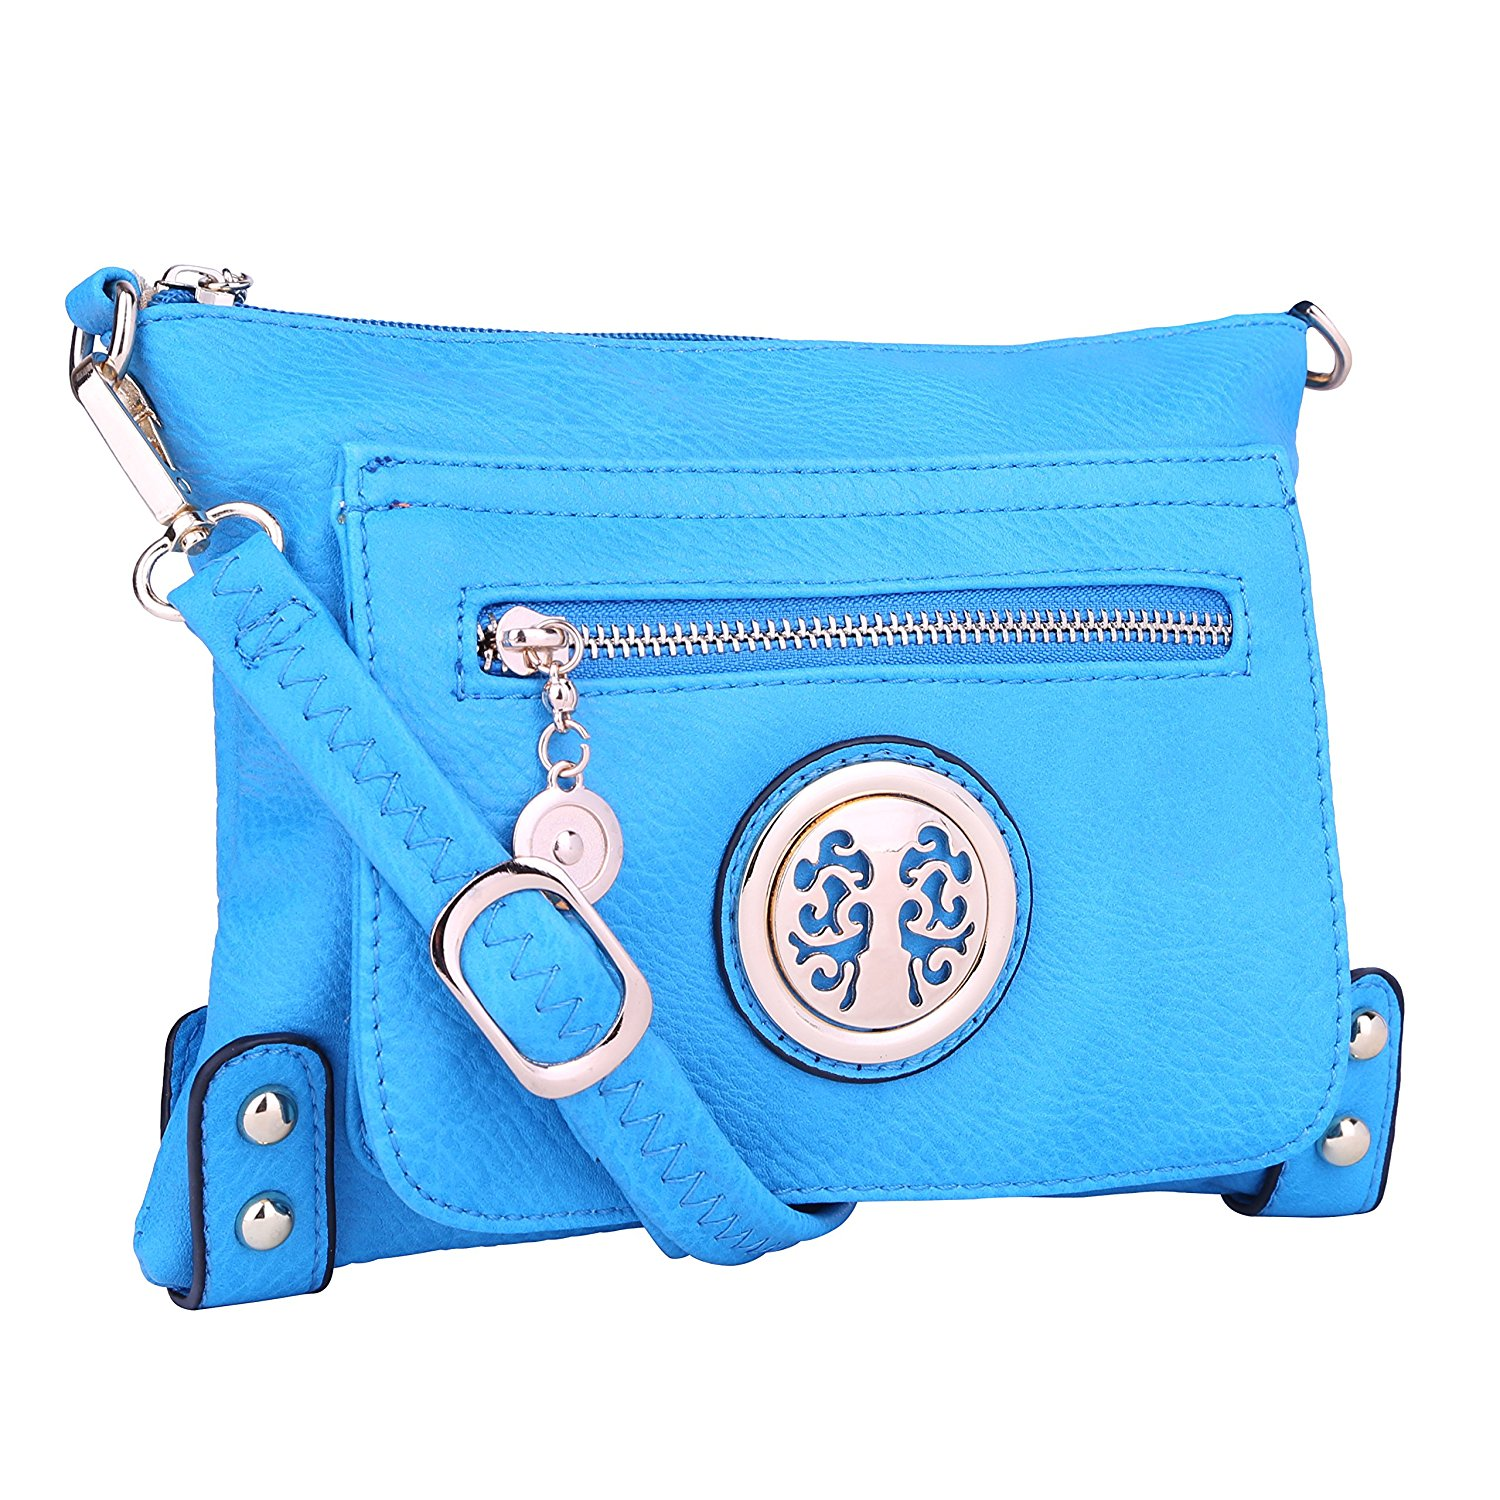 Cheap Fossil Crossbody Bag Find Deals On Line Tessa Satchel Blue Get Quotations Purse Multiple Pocket With Adjustable Shoulder